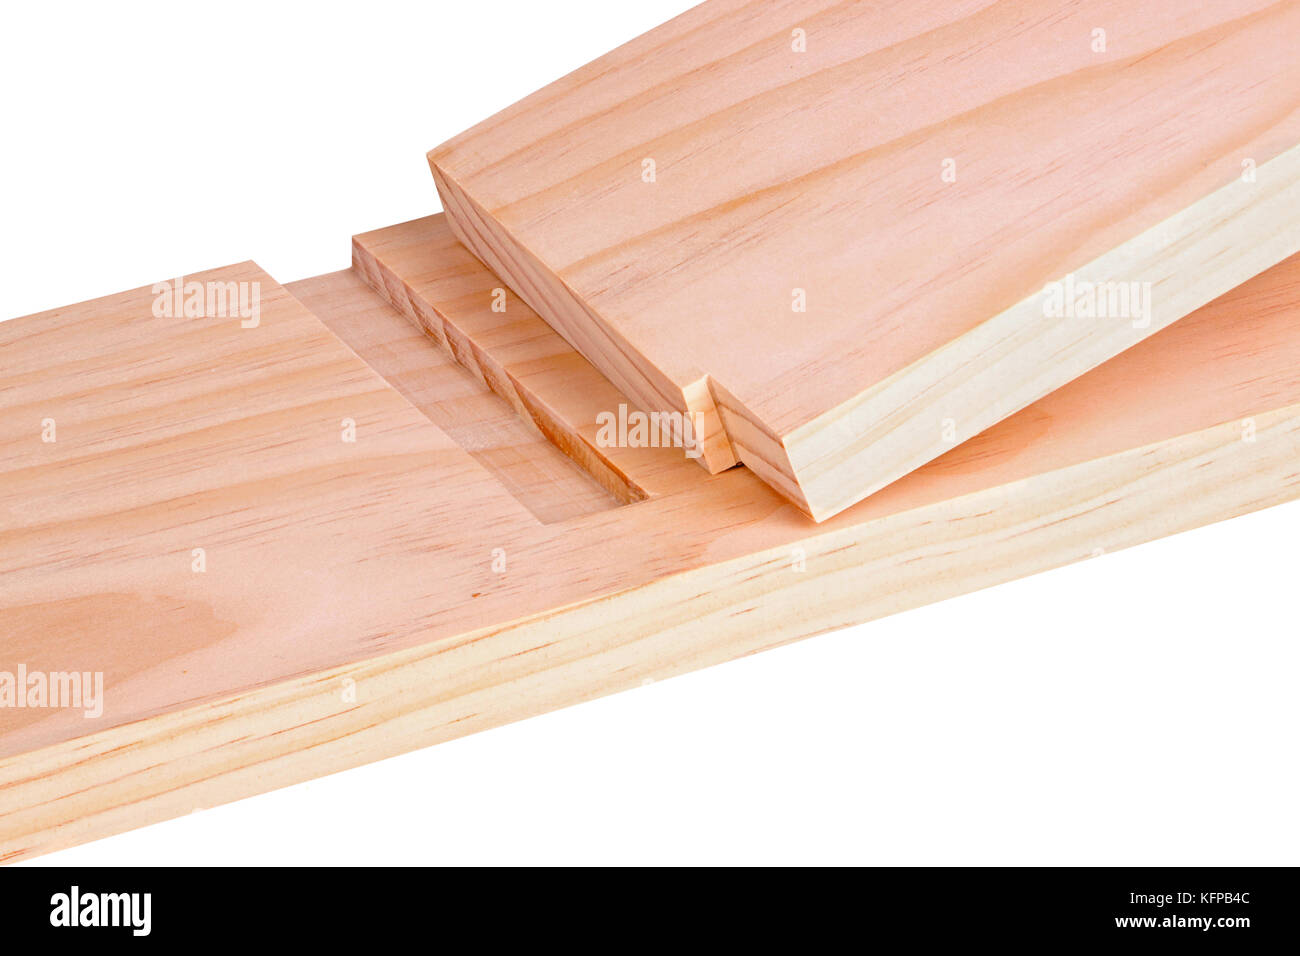 blind dado joint. close-up of two pine boards cut for a blind or stopped dado joint isolated